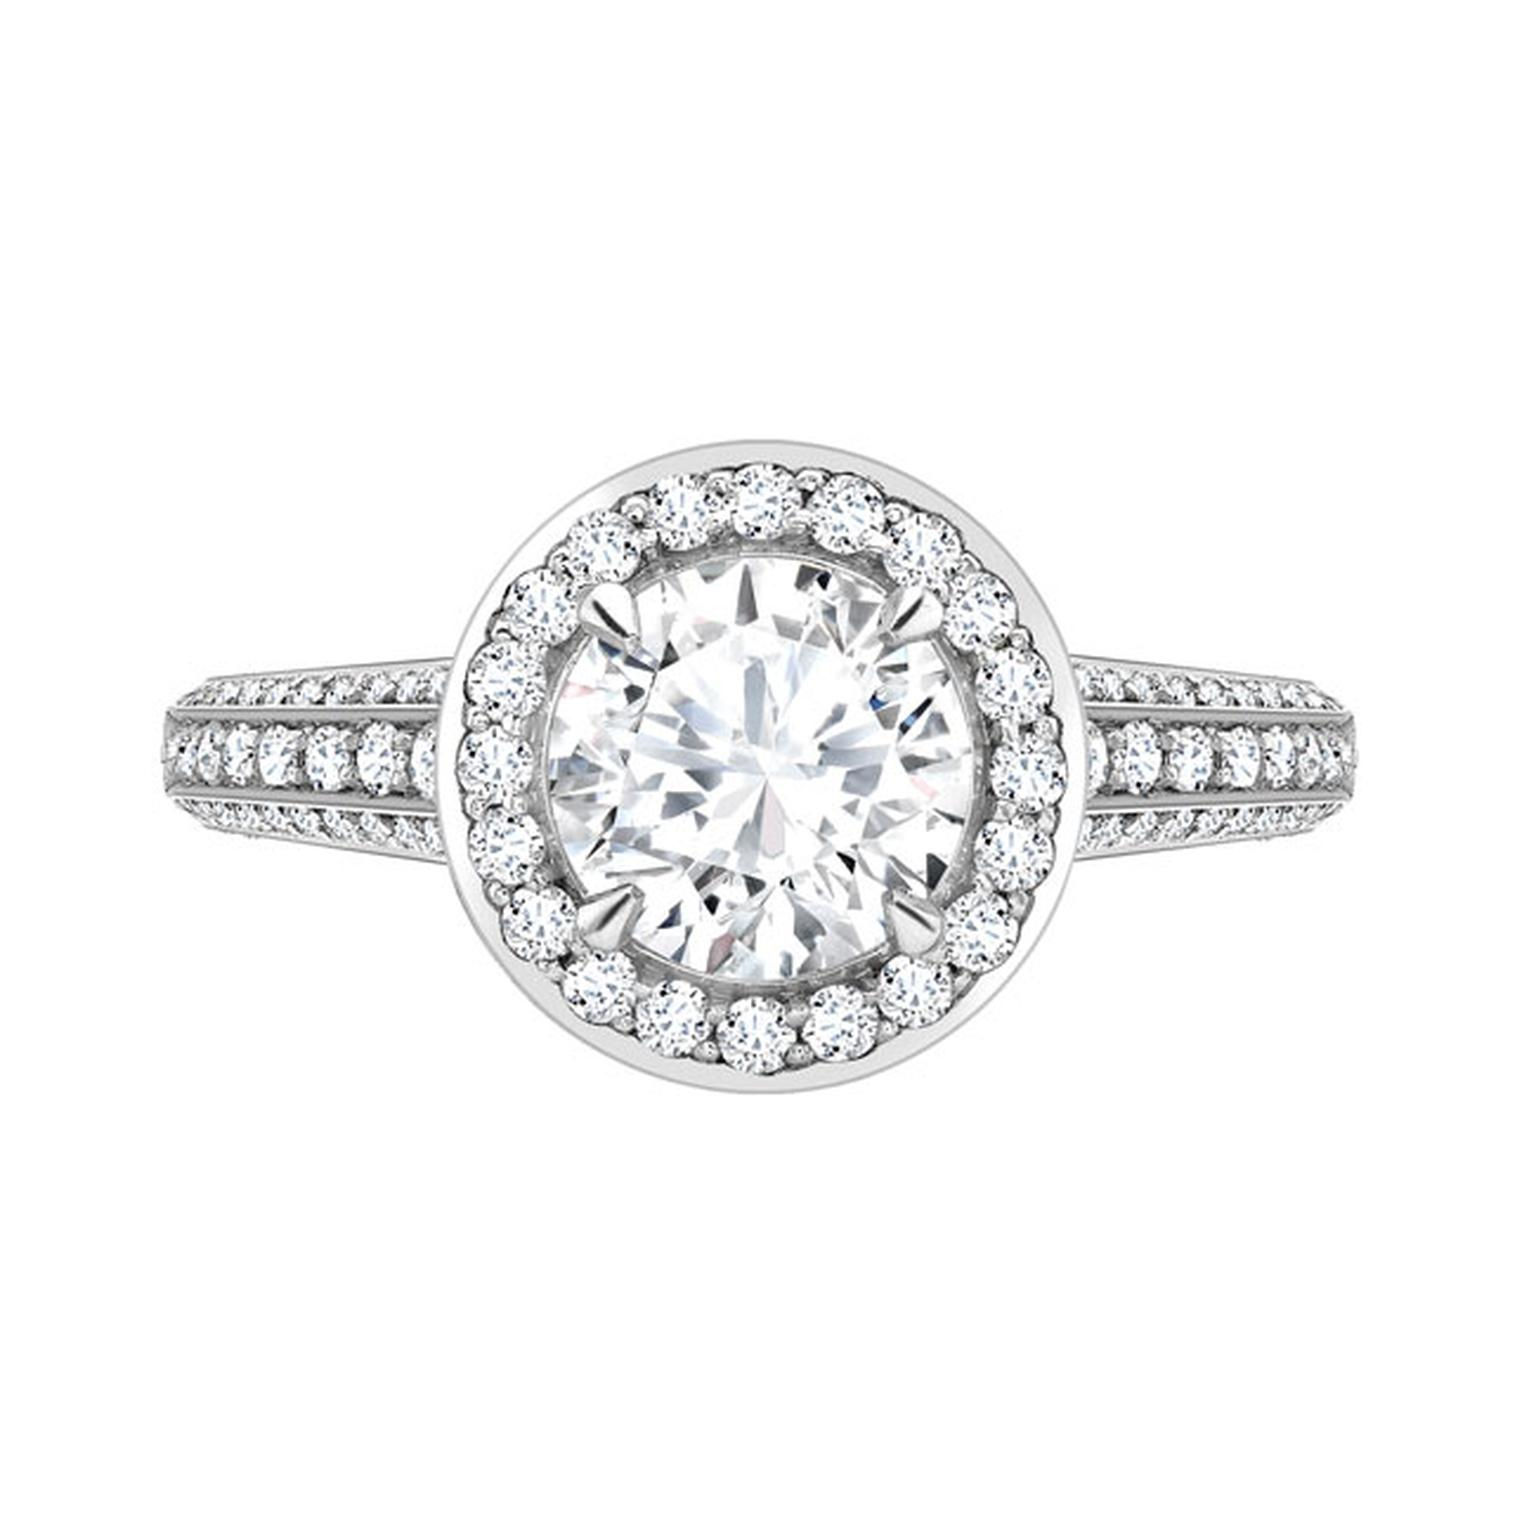 David Marshall Round Brilliant Cut Diamond Ring_main